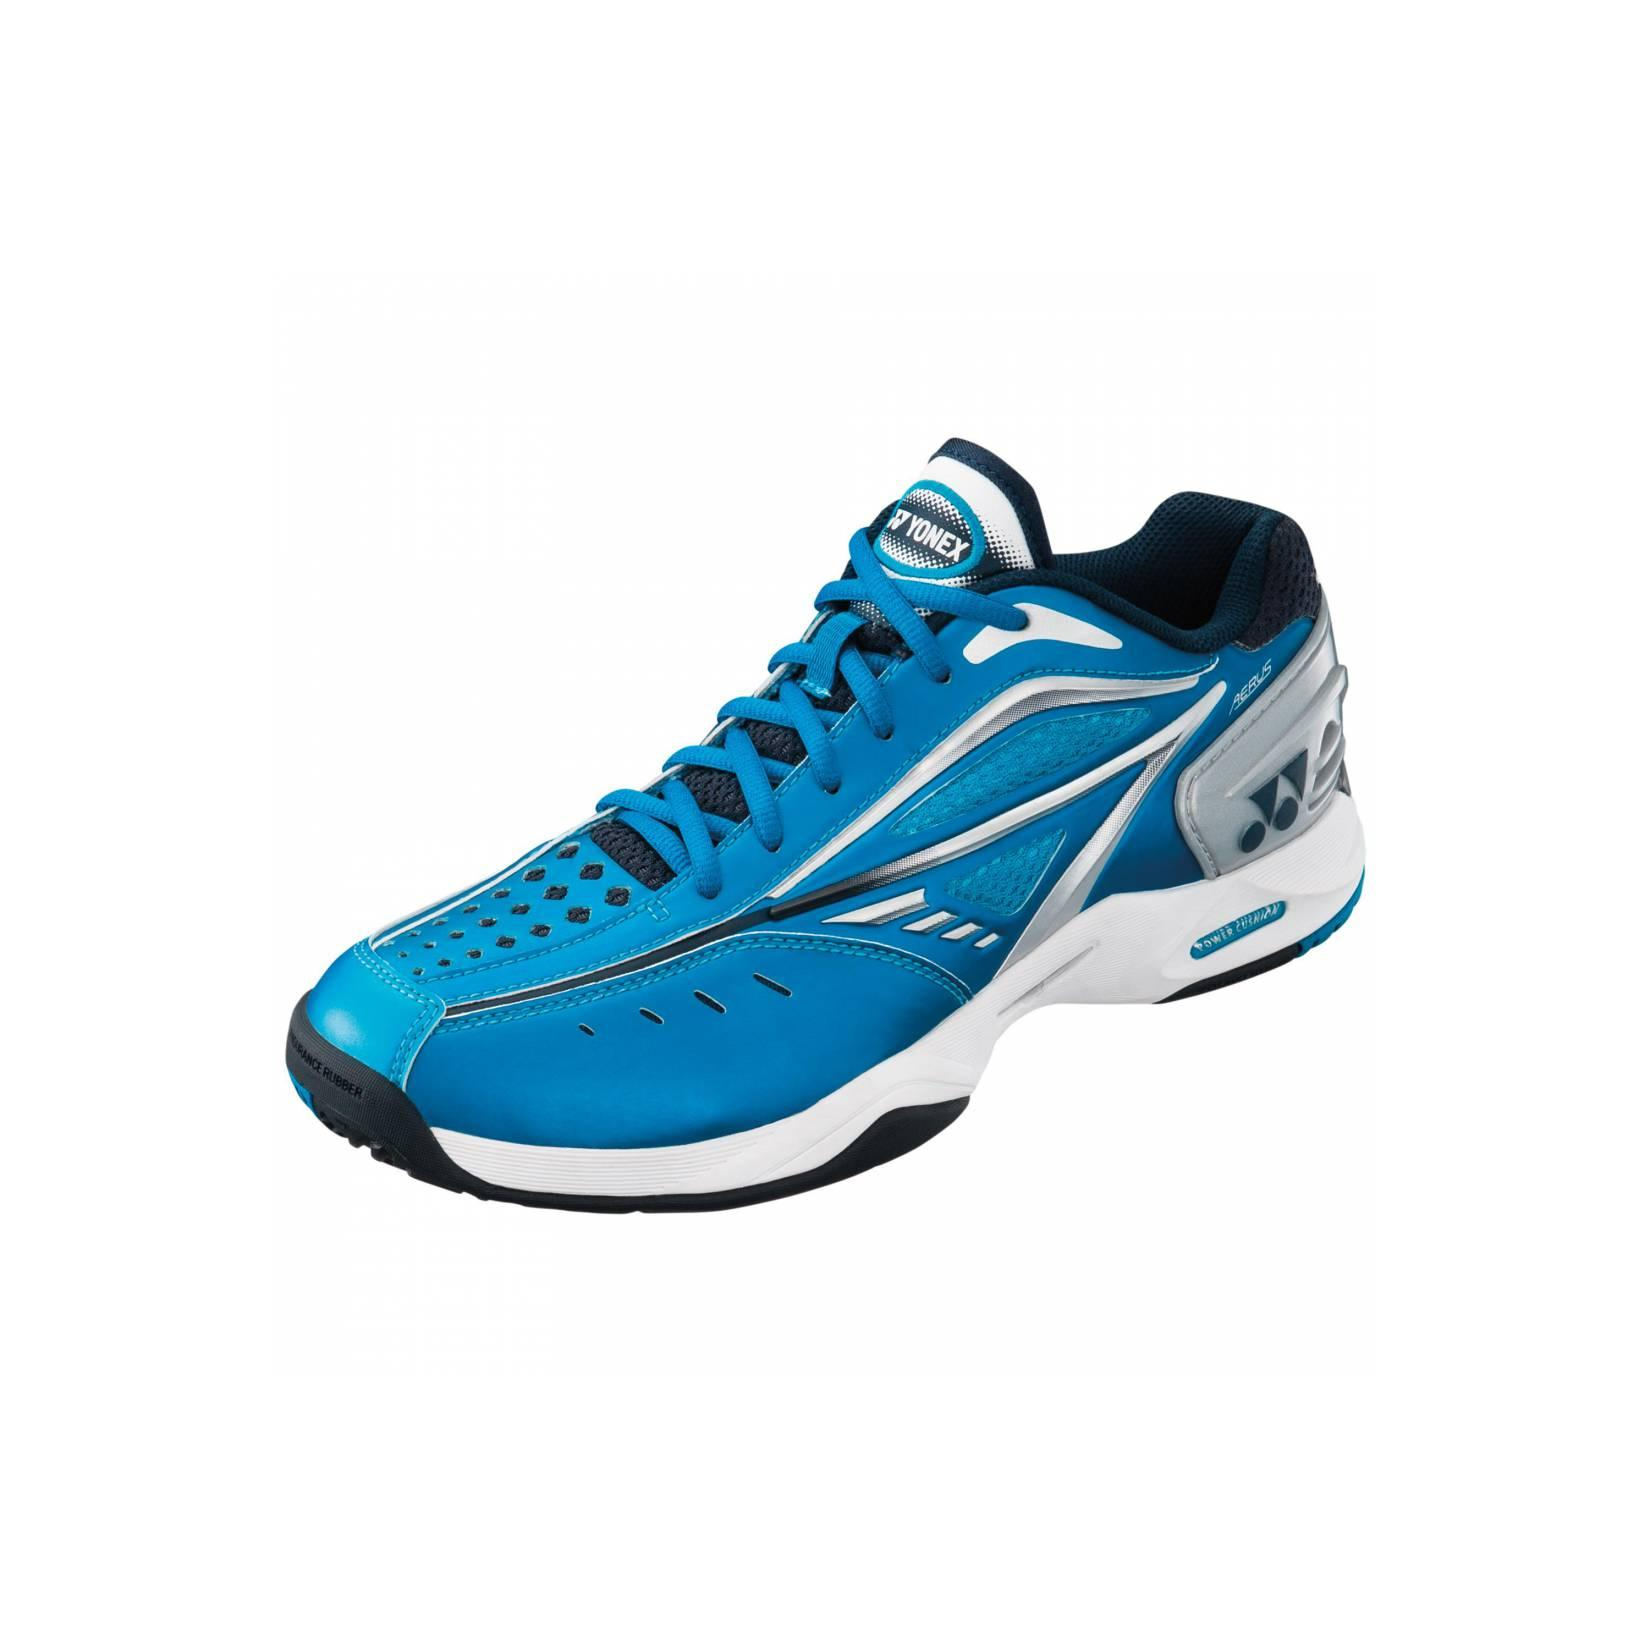 Sepatu Yonex AERUS - BLUE SHOES TENNIS (ORIGINAL)